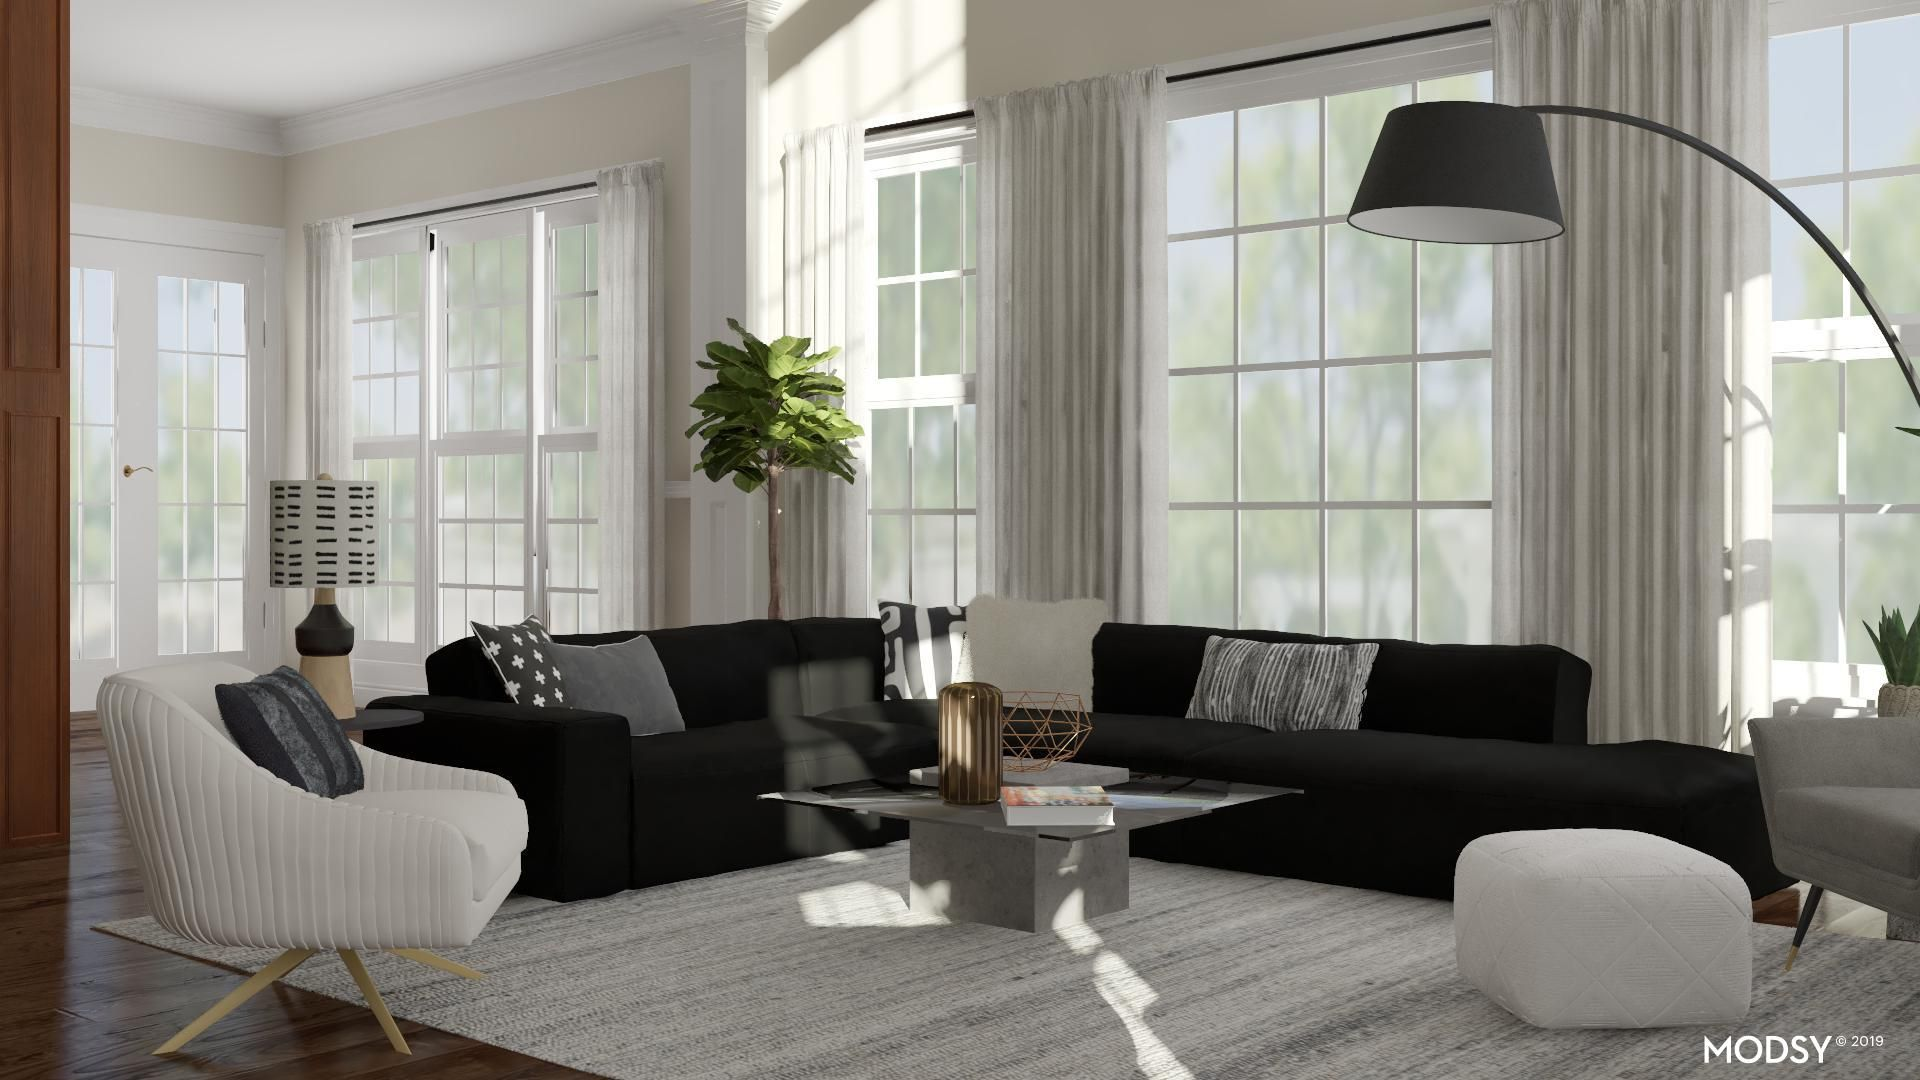 Bold Black And White Living Room Modern Style Living Room Design Ideas Modern White Living Room Black And White Living Room Black Sofa Living Room